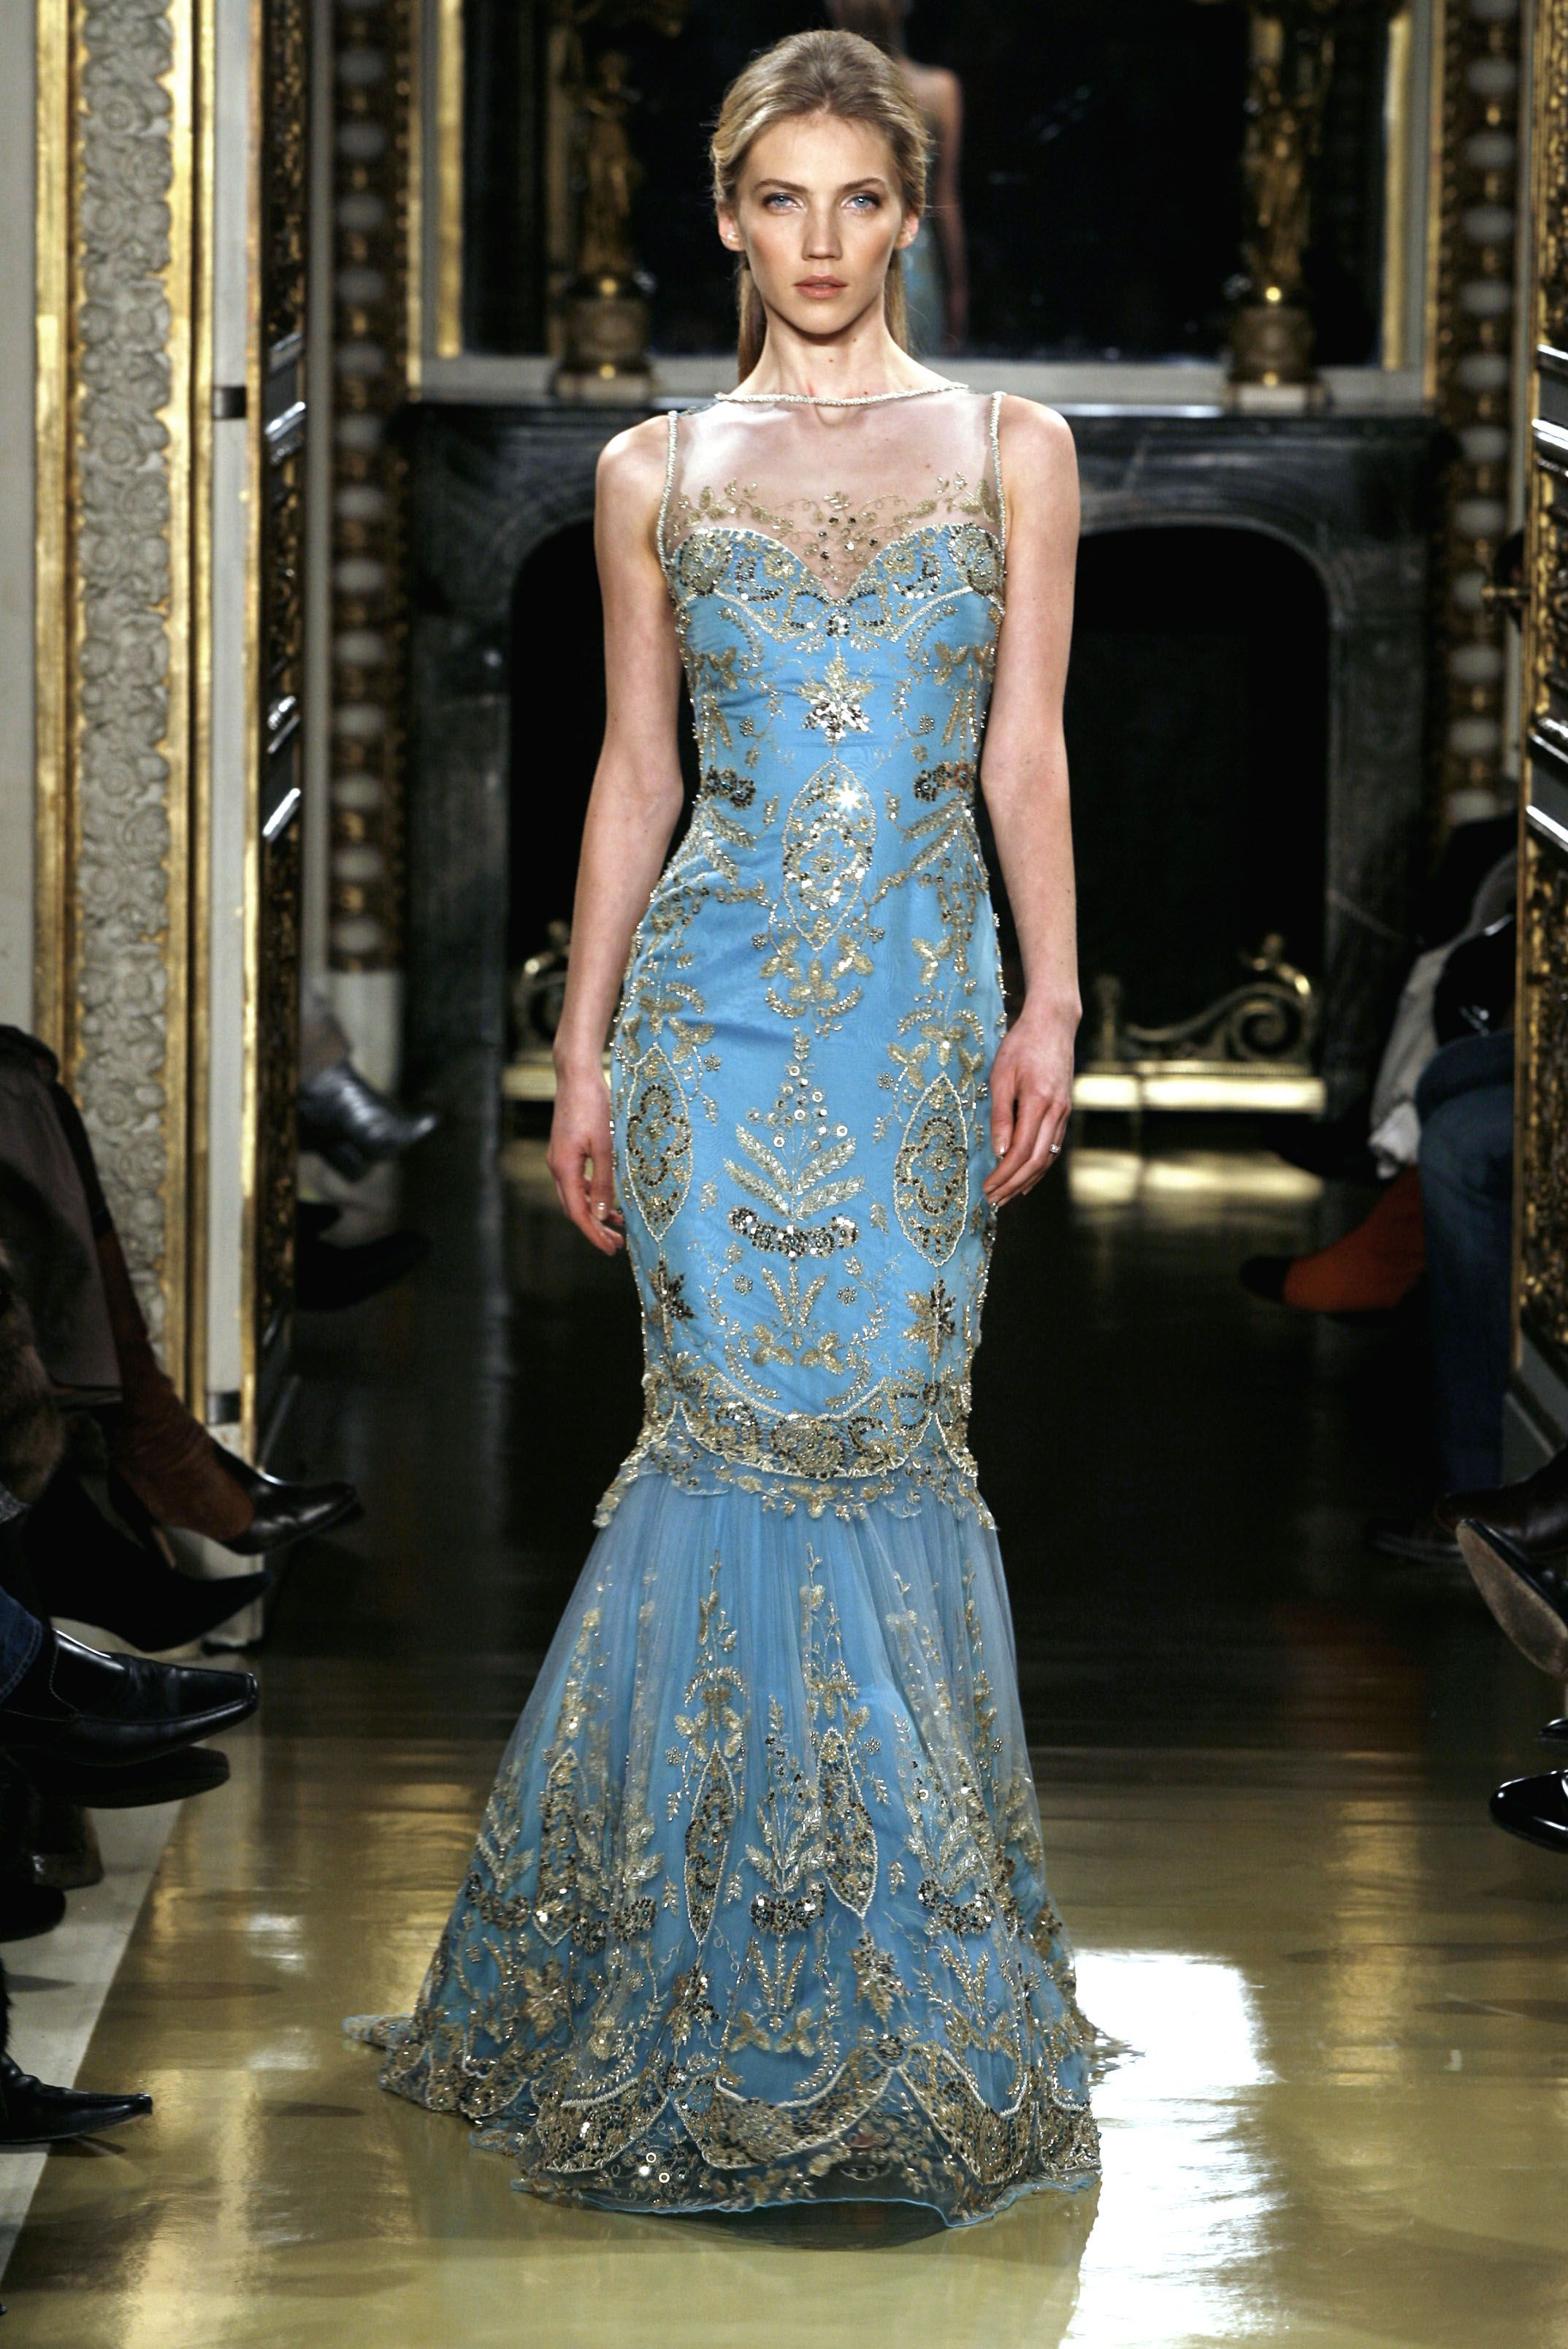 Zuhair Murad Paris S/S 2007 | Dresses and Dresses | Pinterest ...